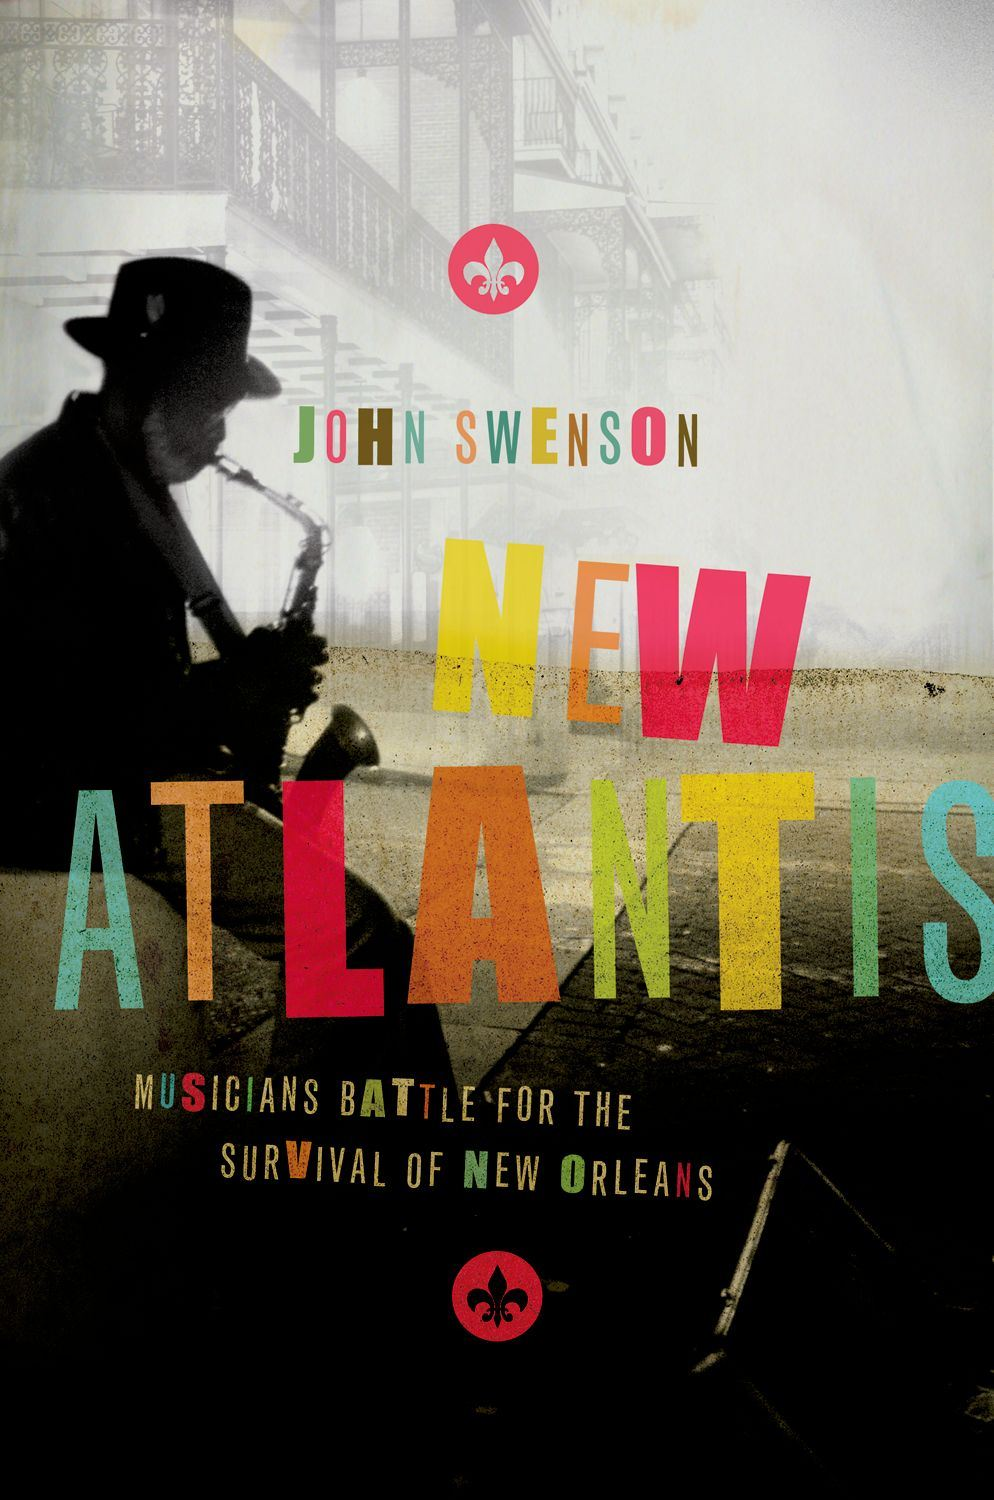 New Atlantis:Musicians Battle for the Survival of New Orleans